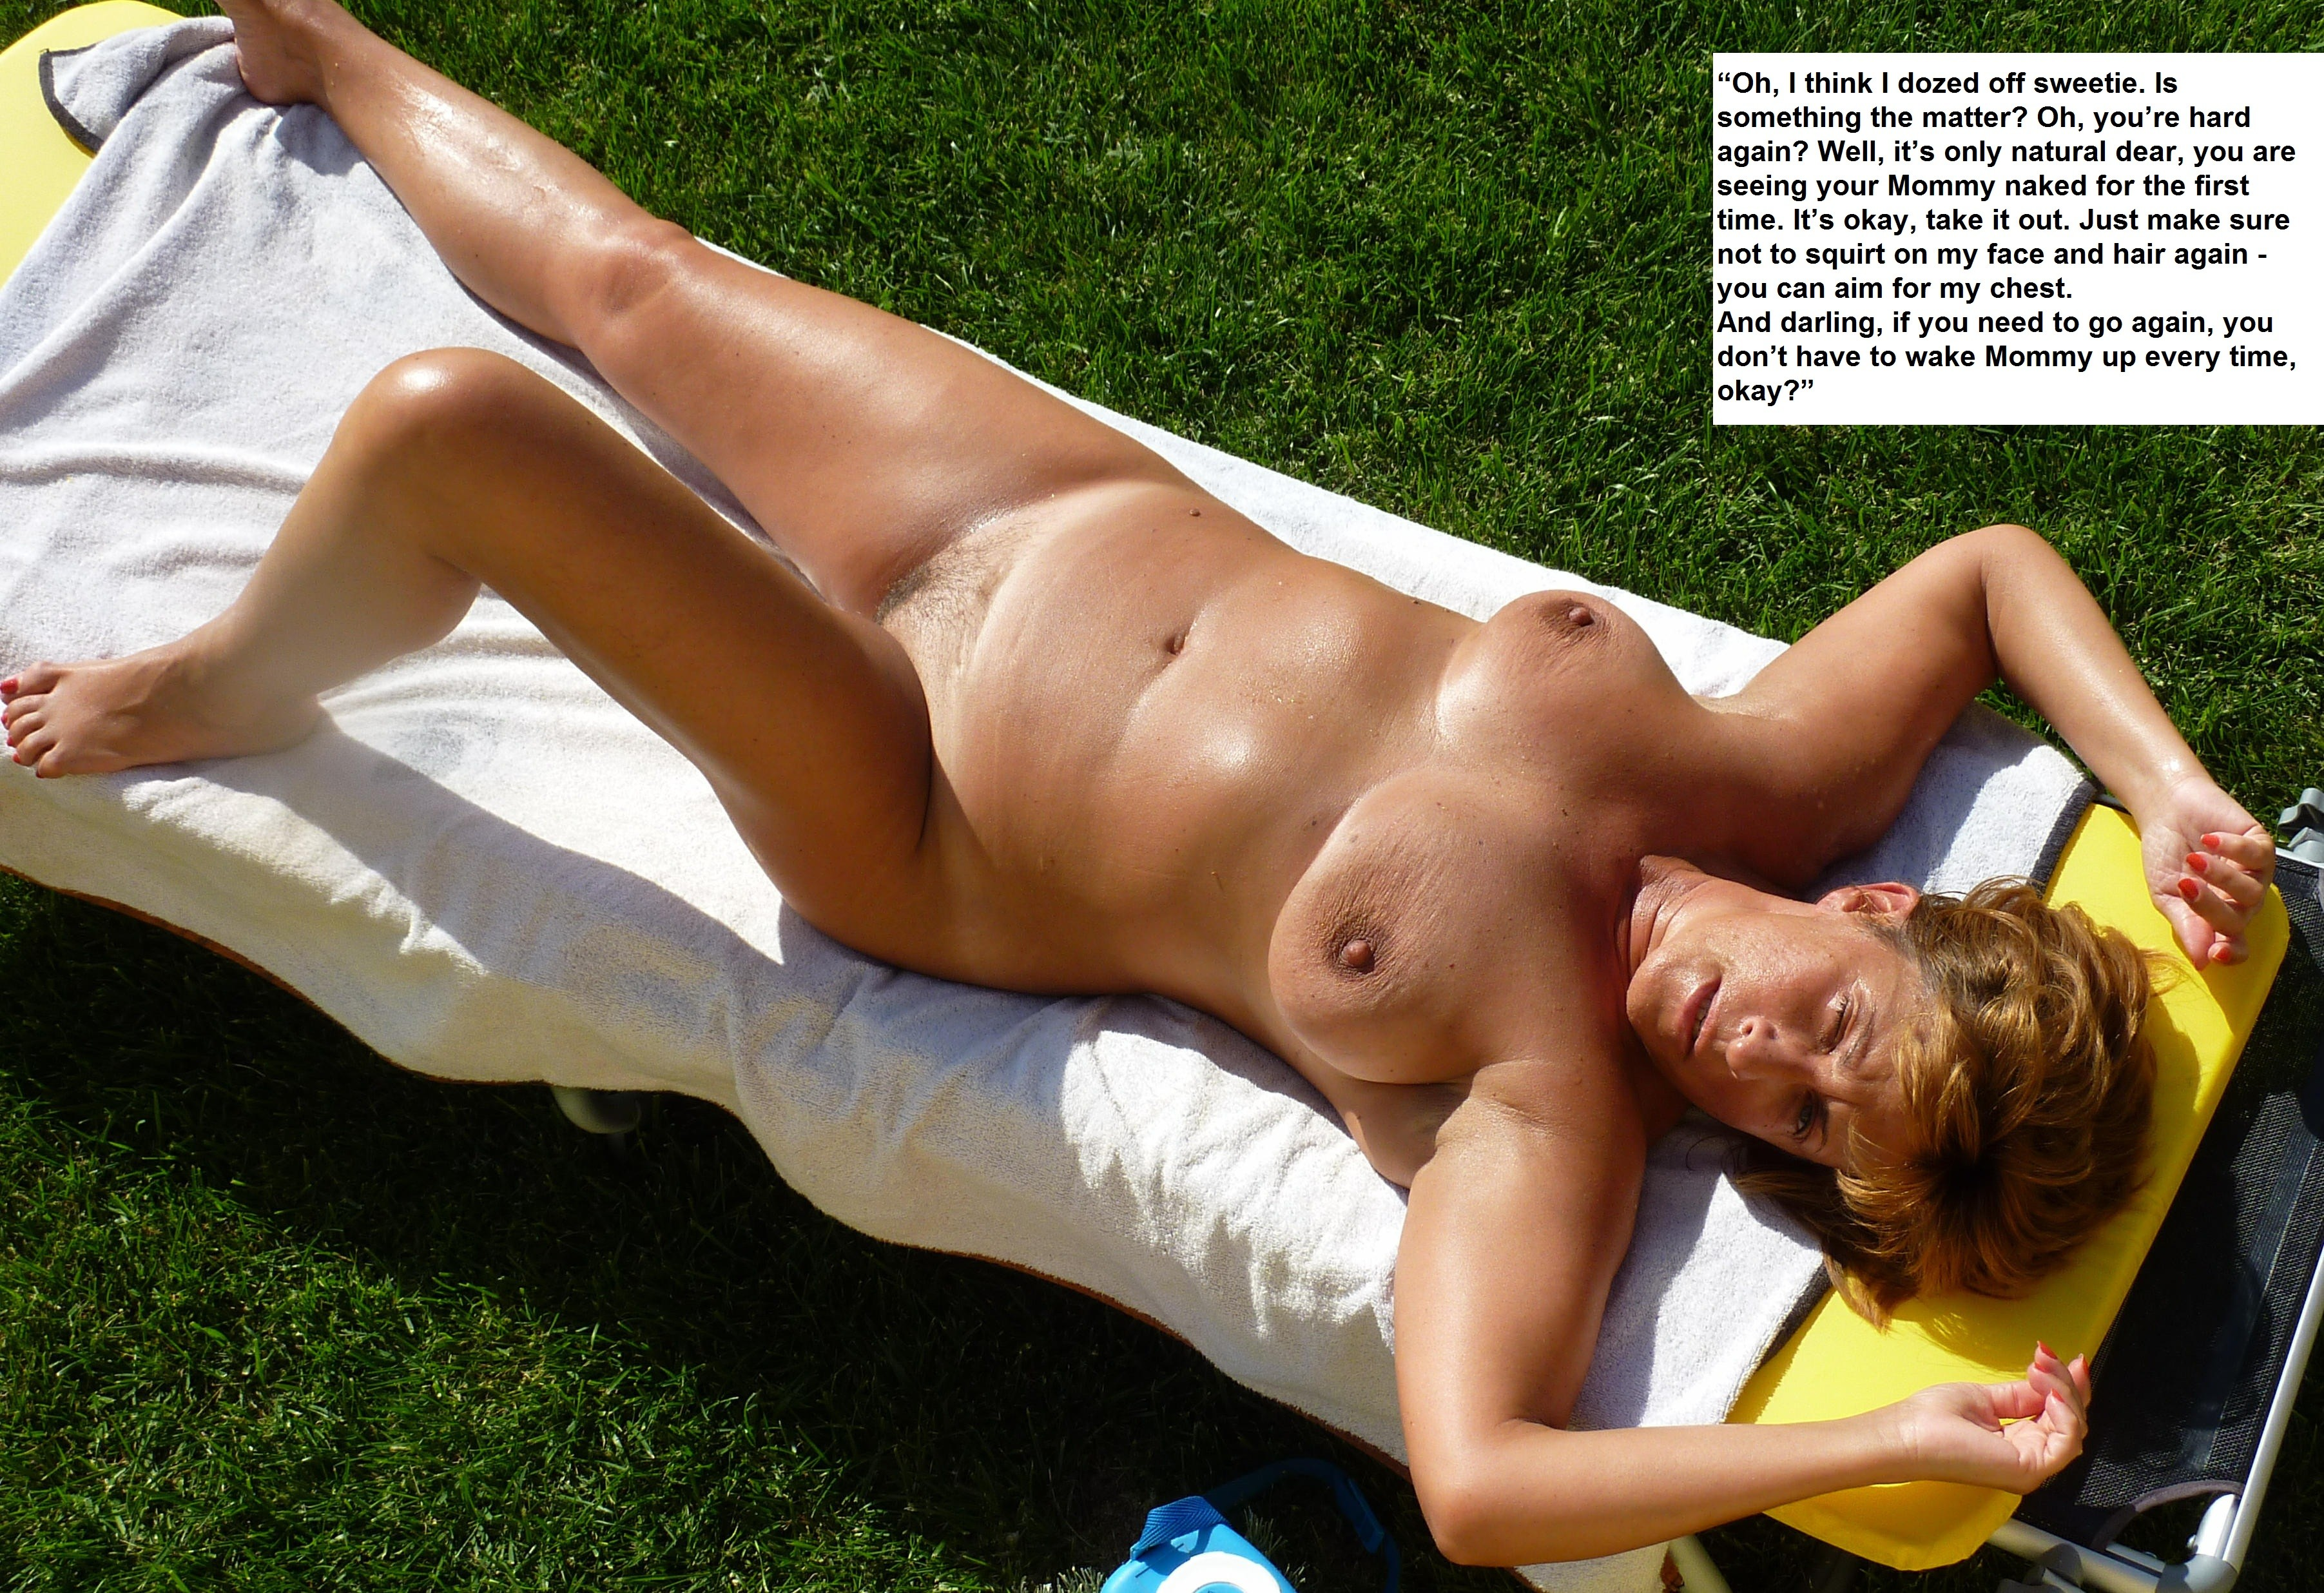 Temptation old women nude picture